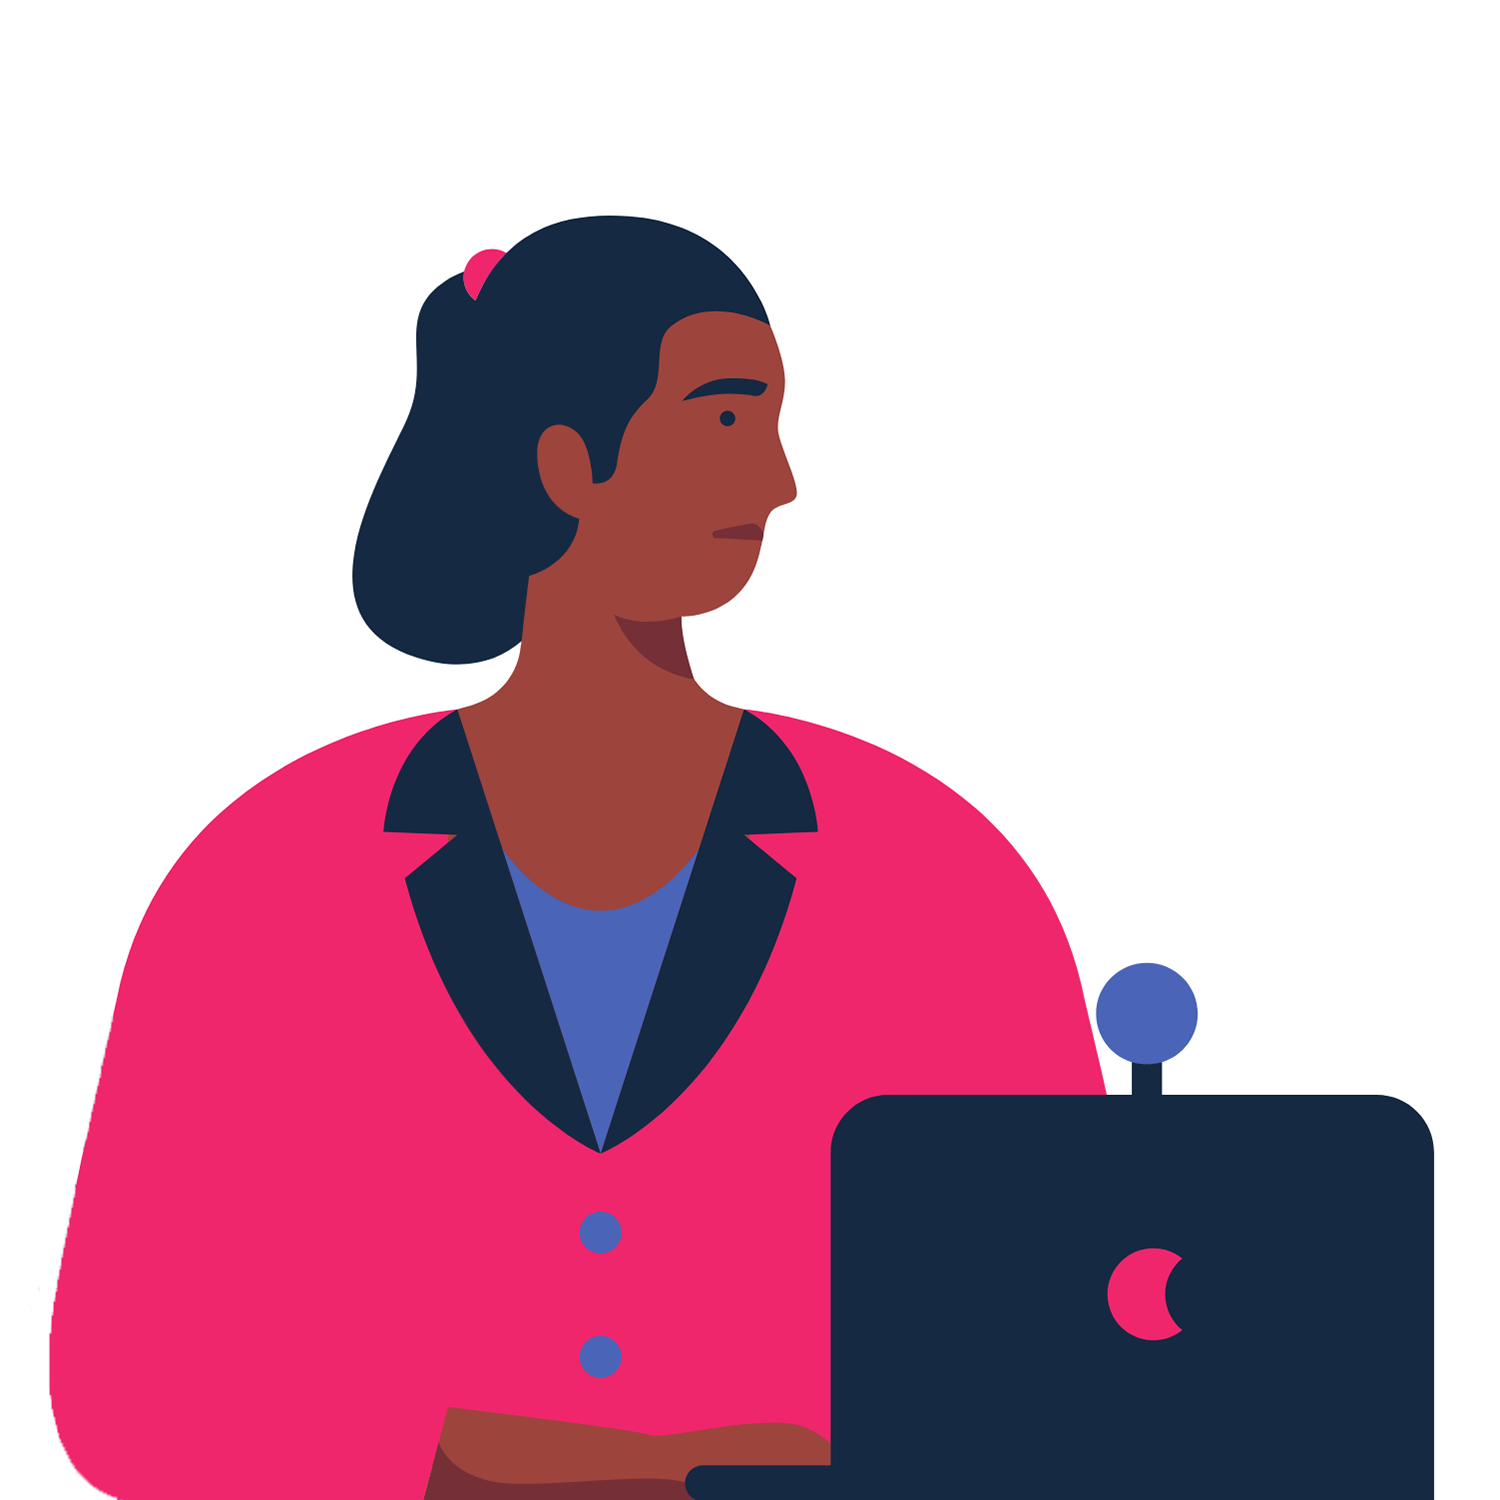 Illustration of a person talking through a computer screen